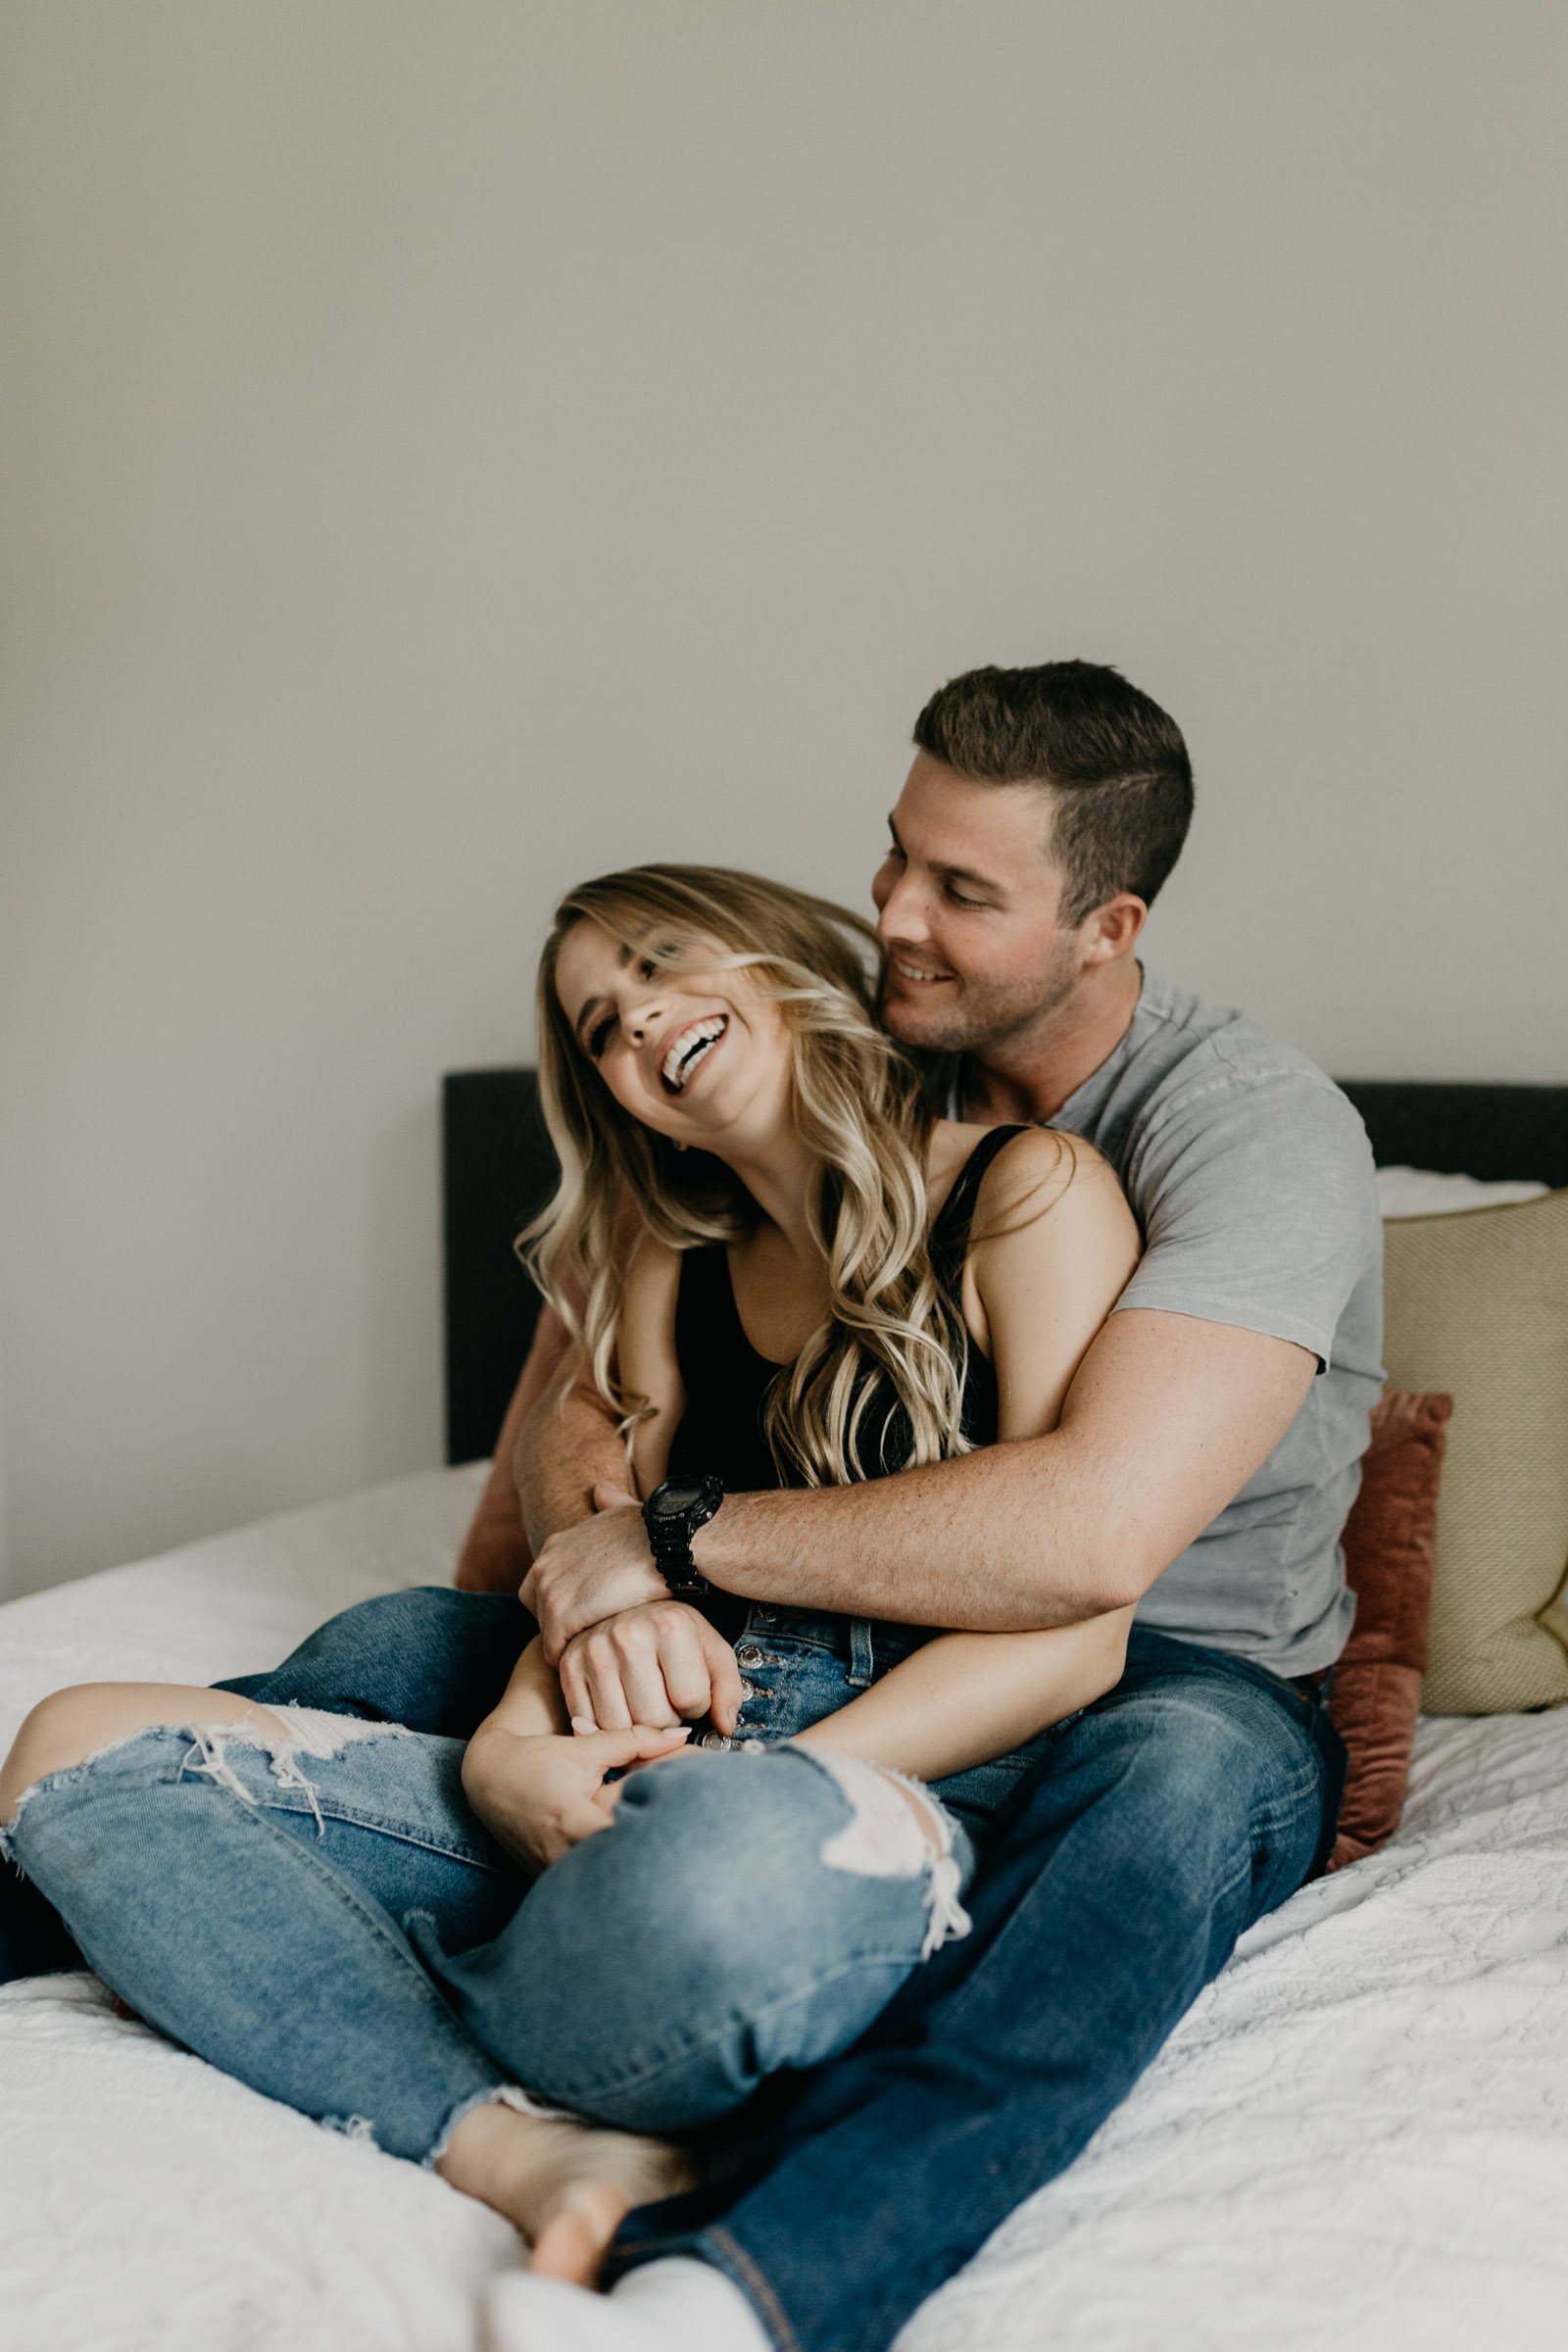 Playful photo of couple sitting on bed